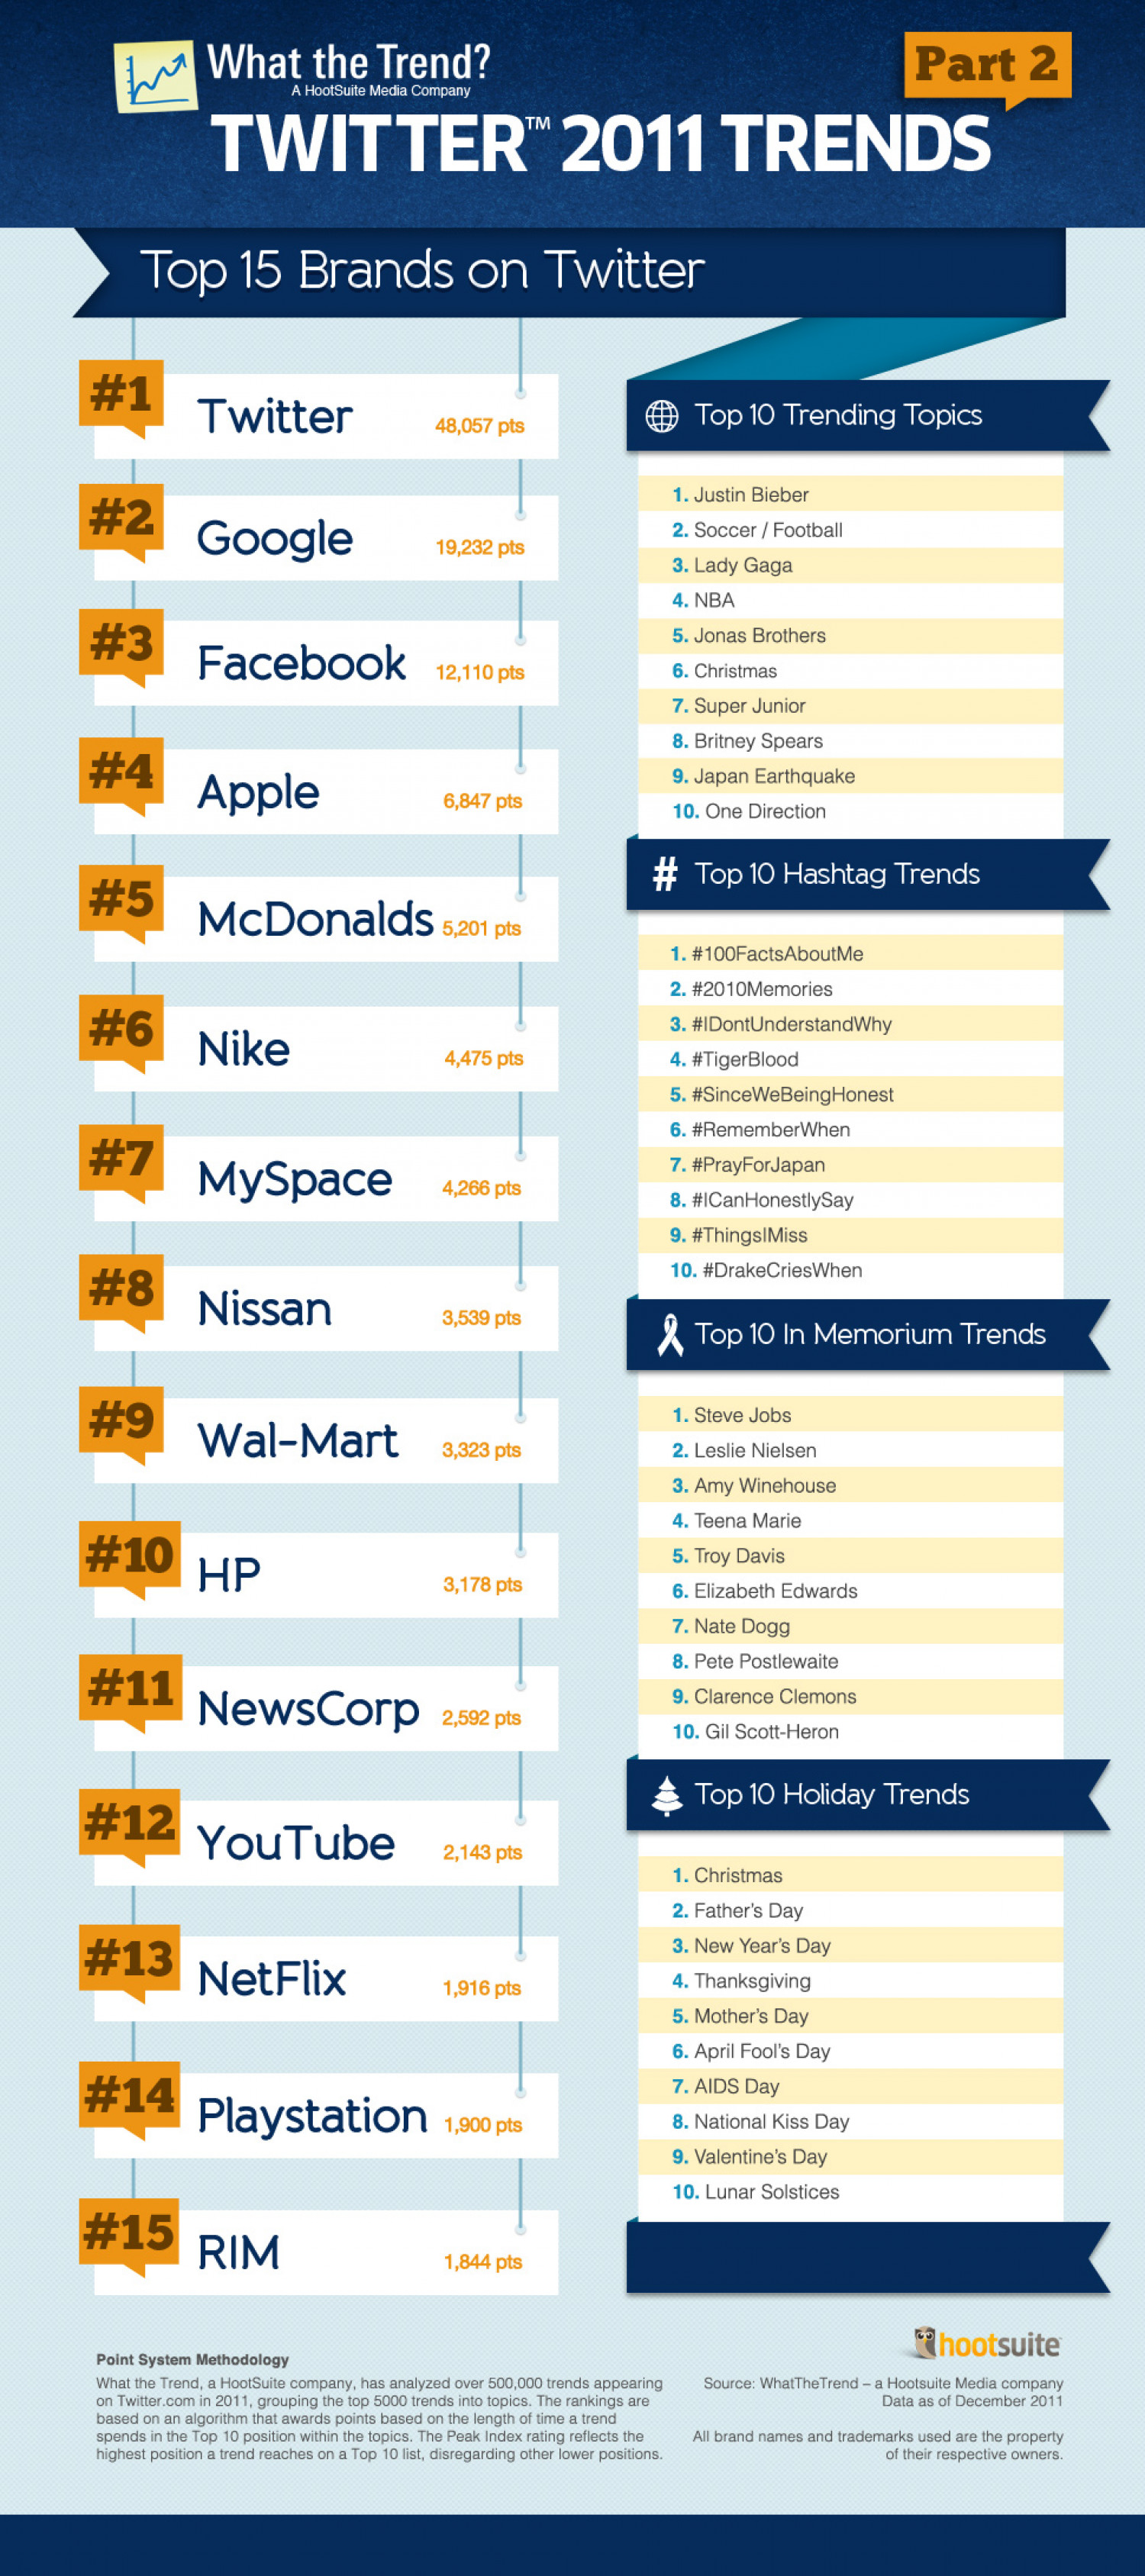 What The Trend Twitter 2011 Trends P2 Infographic